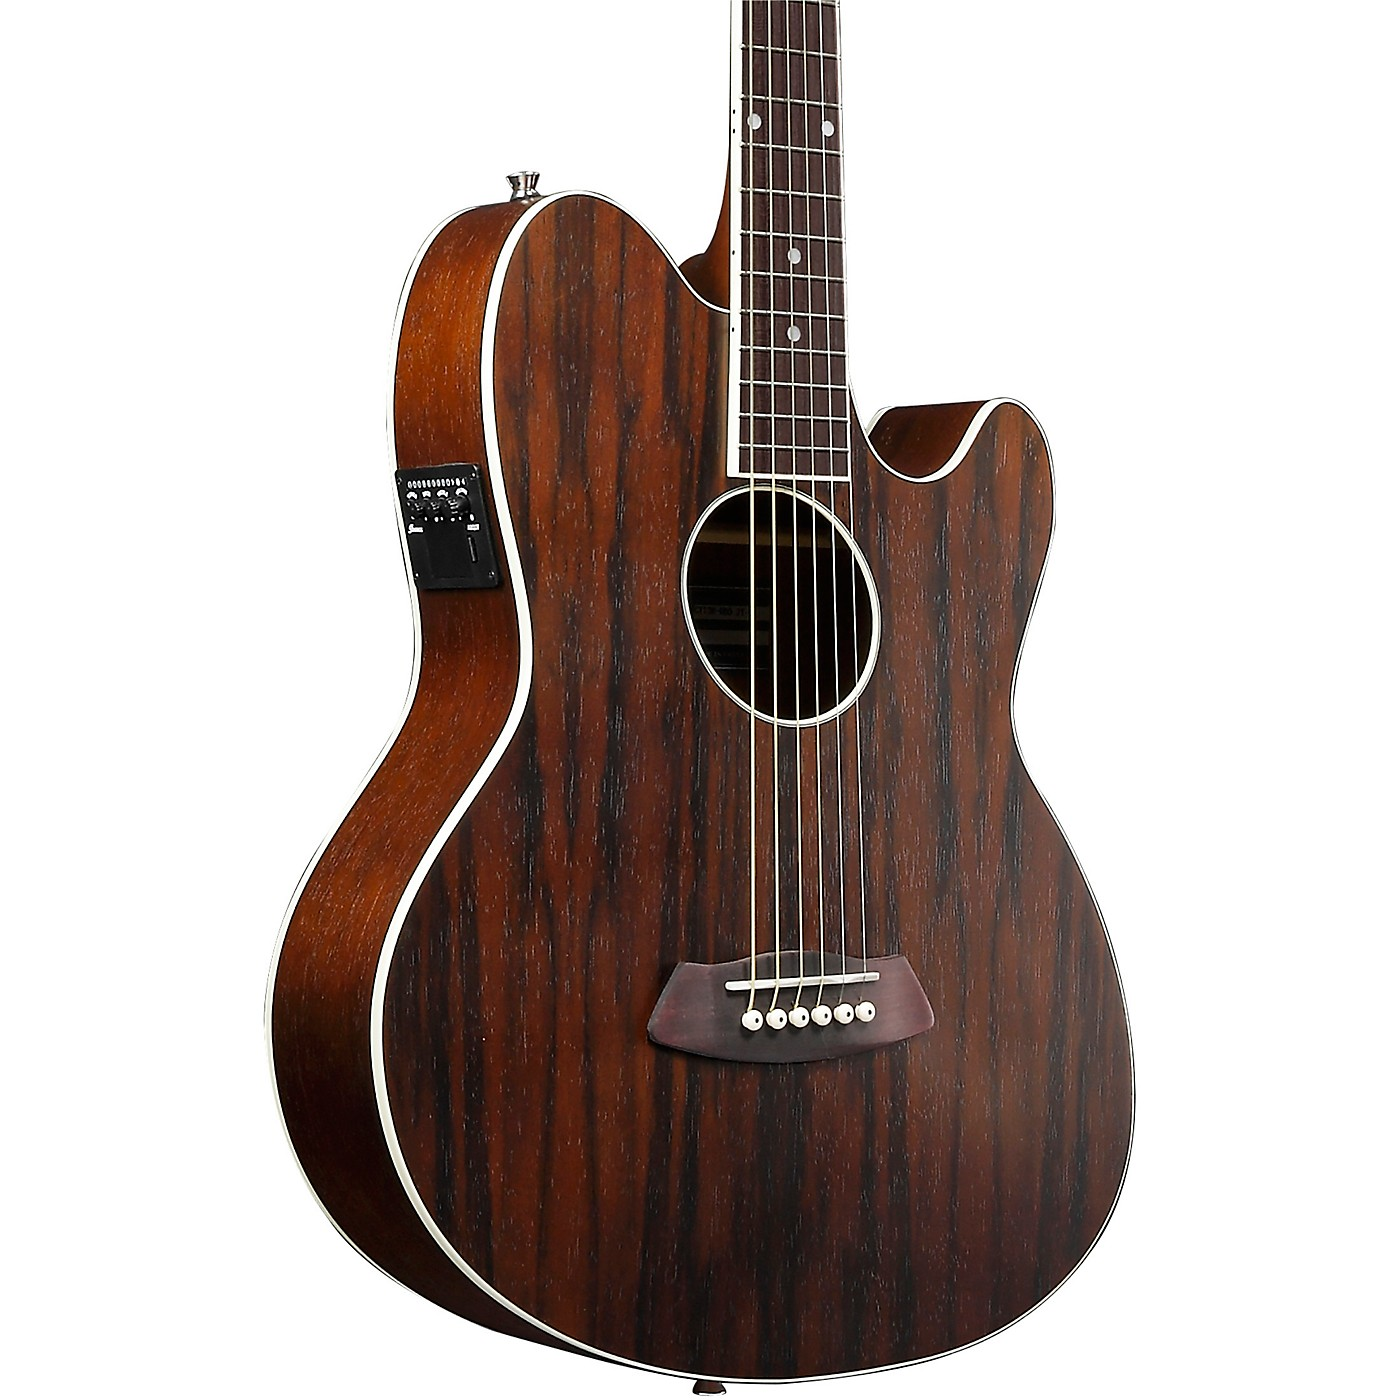 Ibanez TCY13E Talman Acoustic-Electric Guitar With Macassar Ebony Top thumbnail